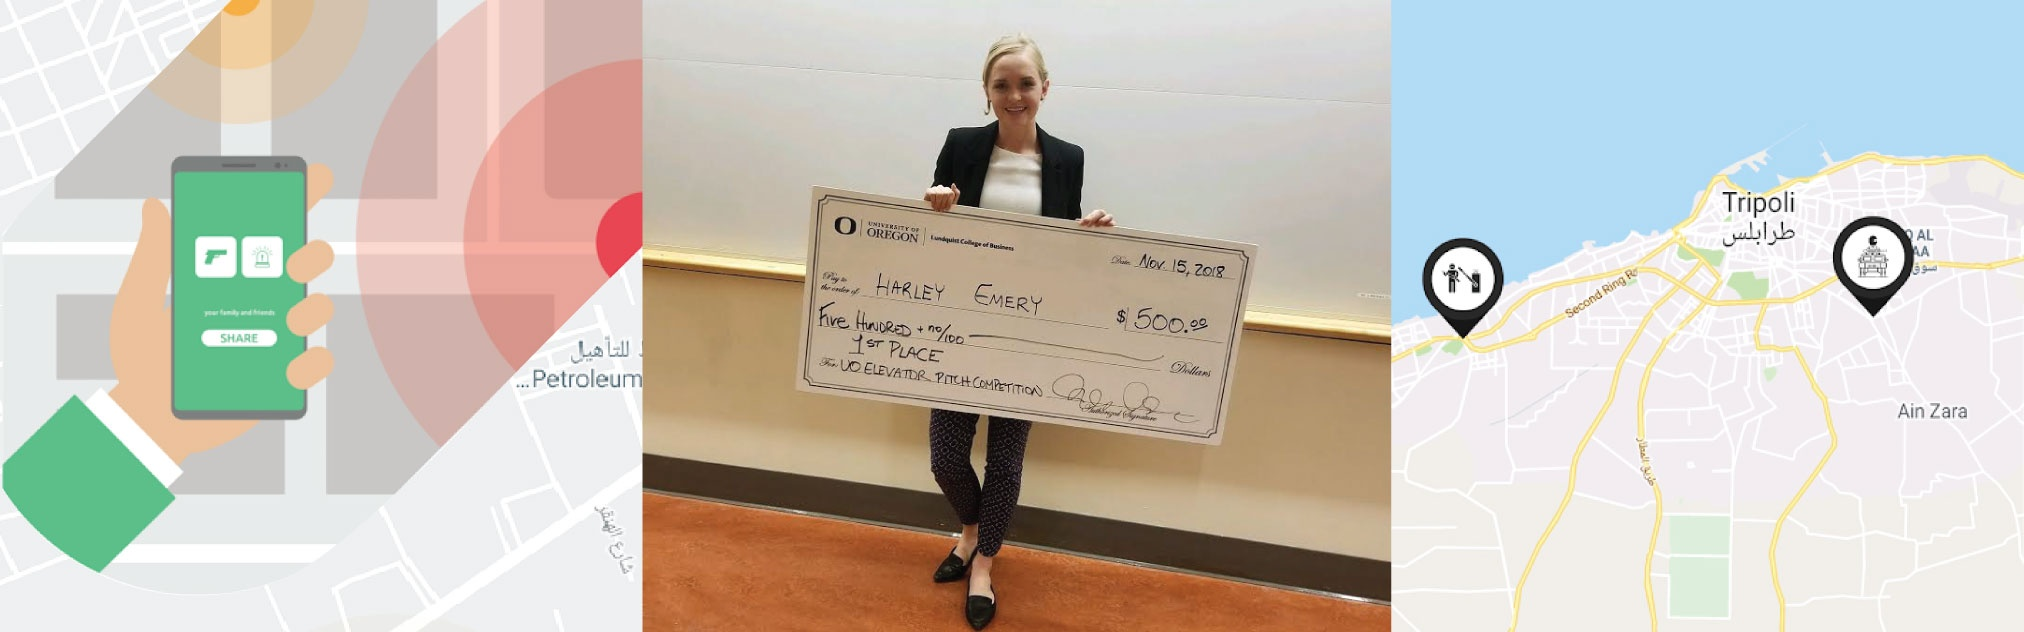 Averto cofounder Harley Emery poses with her award from an elevator competition